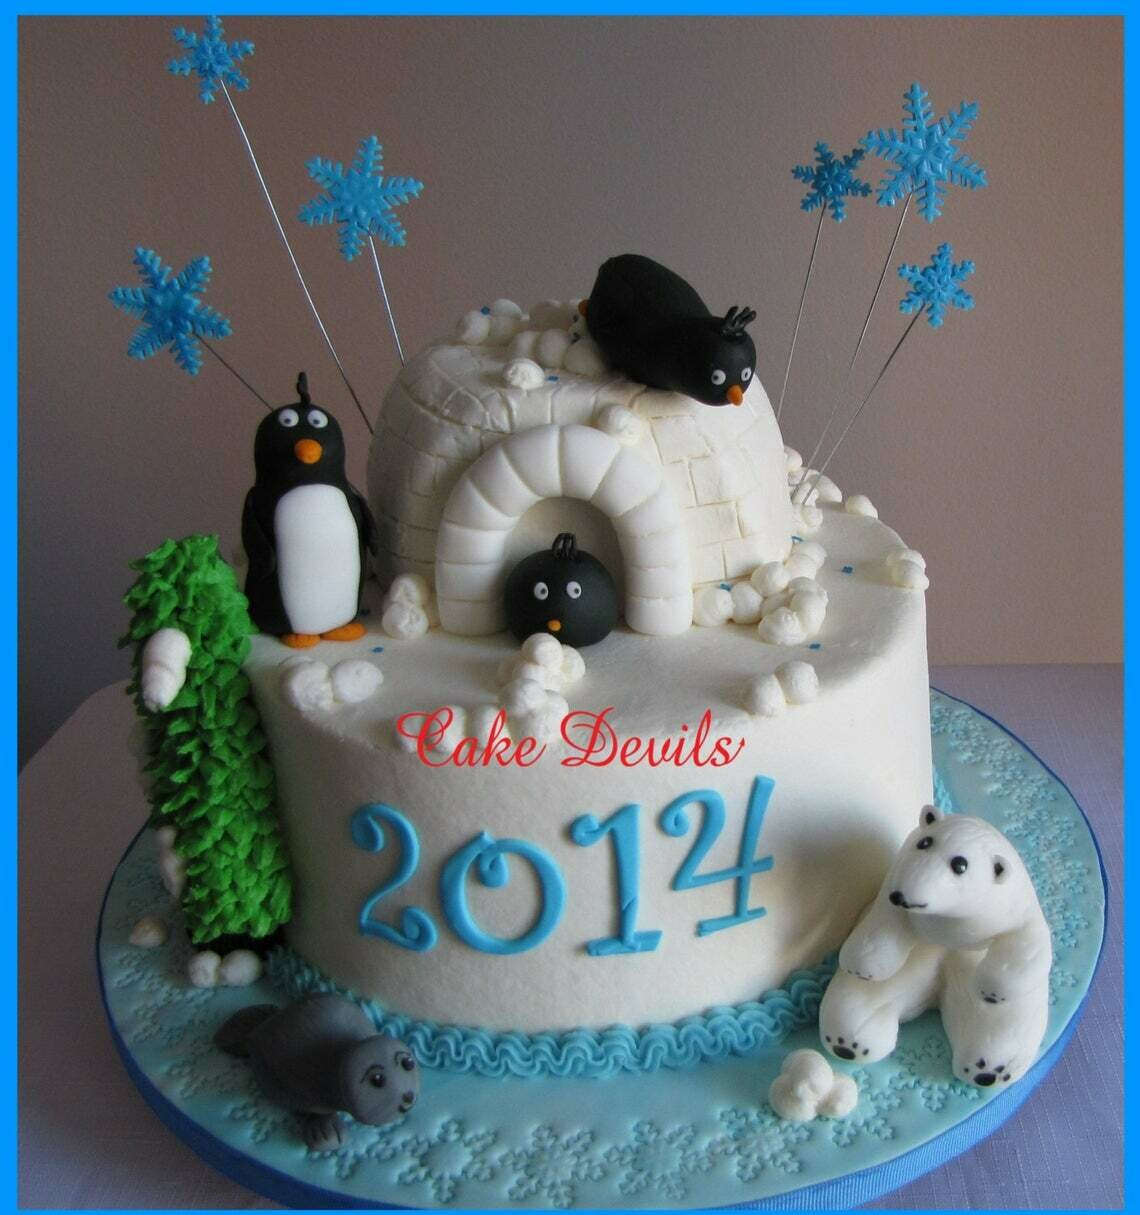 Winter Animal Fondant Cake Topper Kit, Penguin, Polar Bear, Baby Seal Cake Decorations, handmade edible, Igloo cake